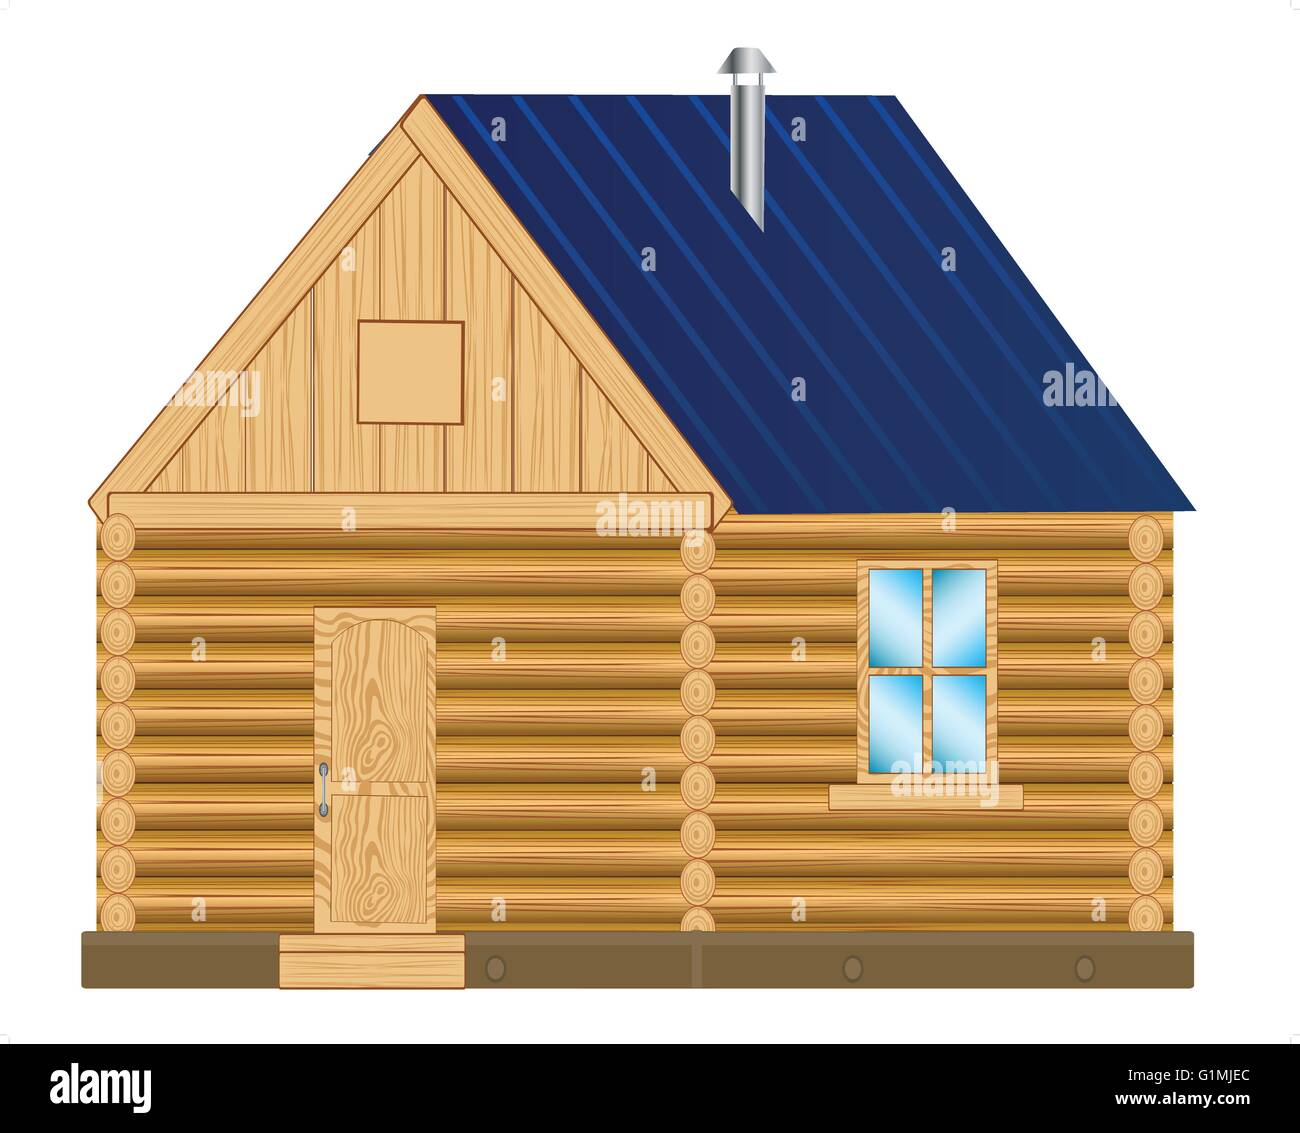 Illustration of the wooden lodge on white background - Stock Vector